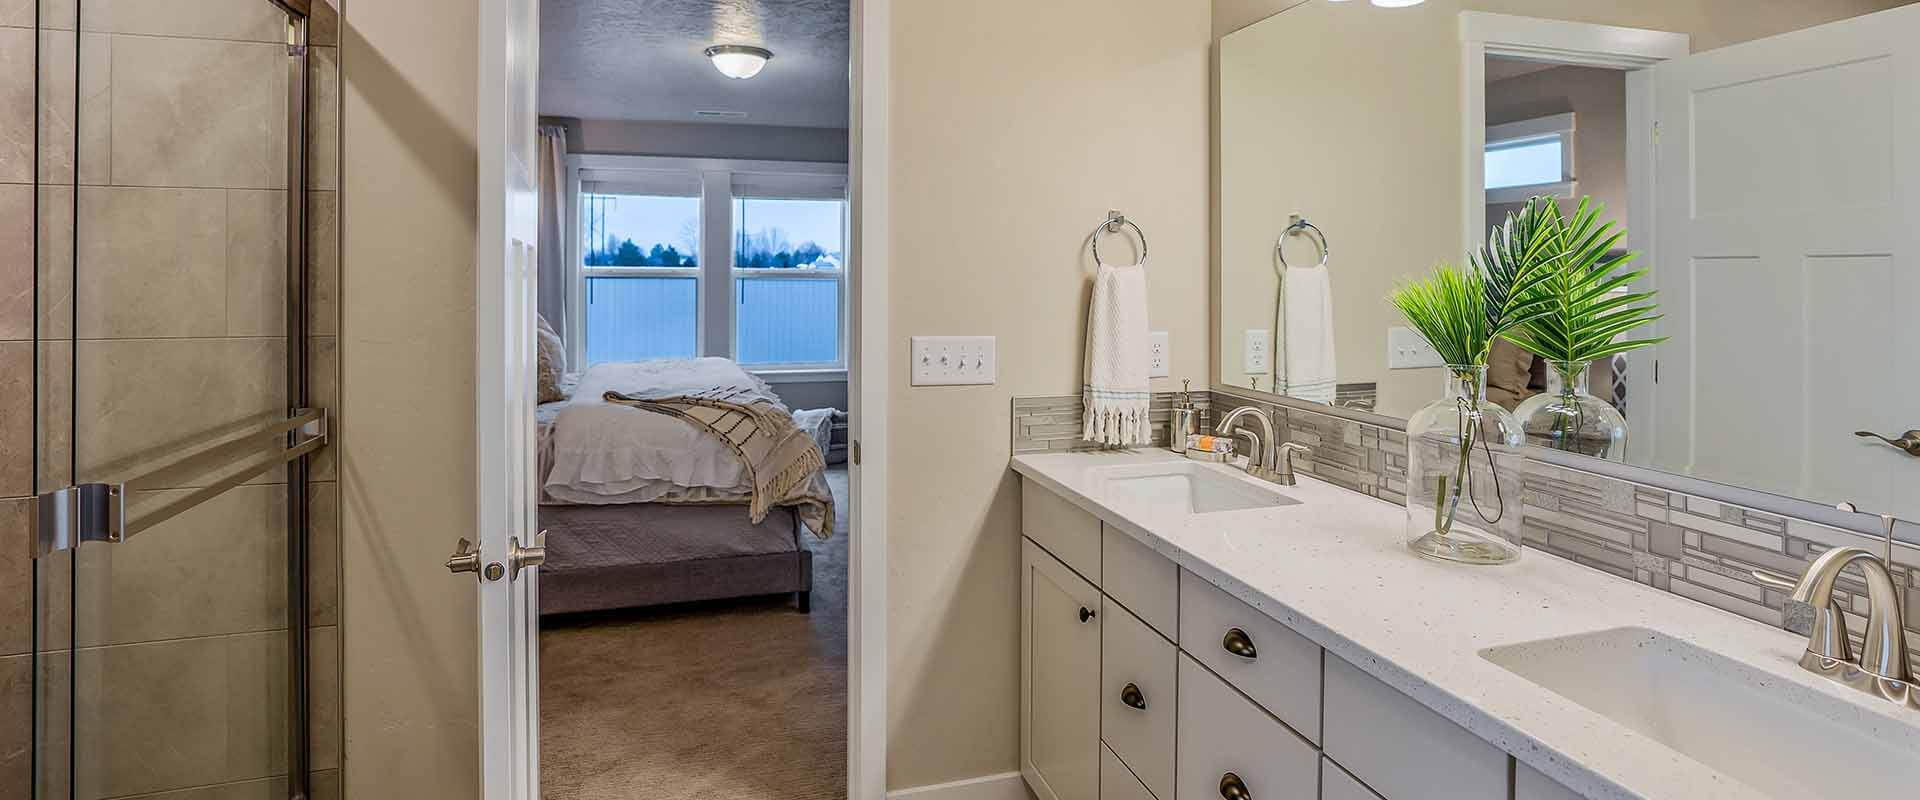 Crestwood_Hubble_Homes_New_Homes_Boise_Master Bath.jpg